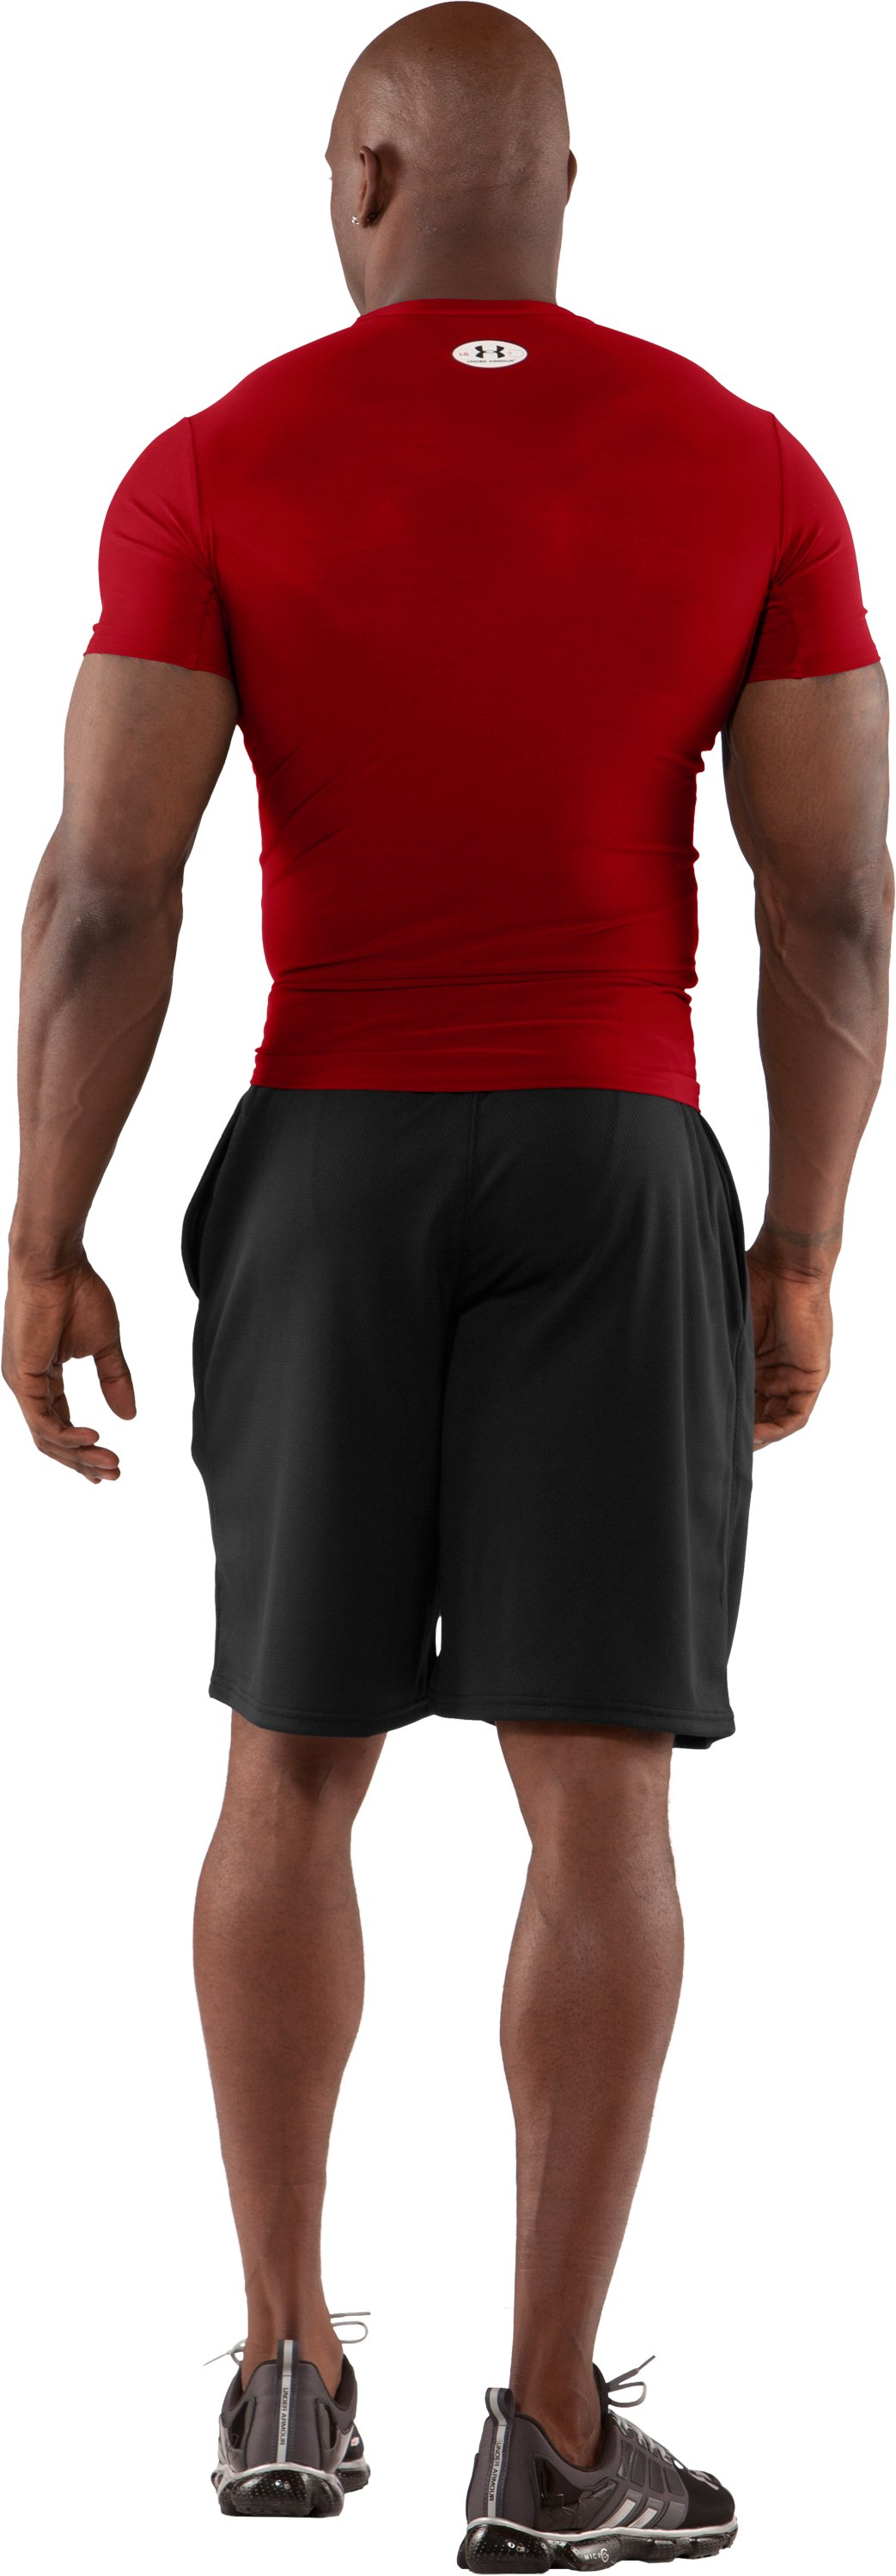 Men's HeatGear® Compression Short Sleeve T-Shirt, Red, Back